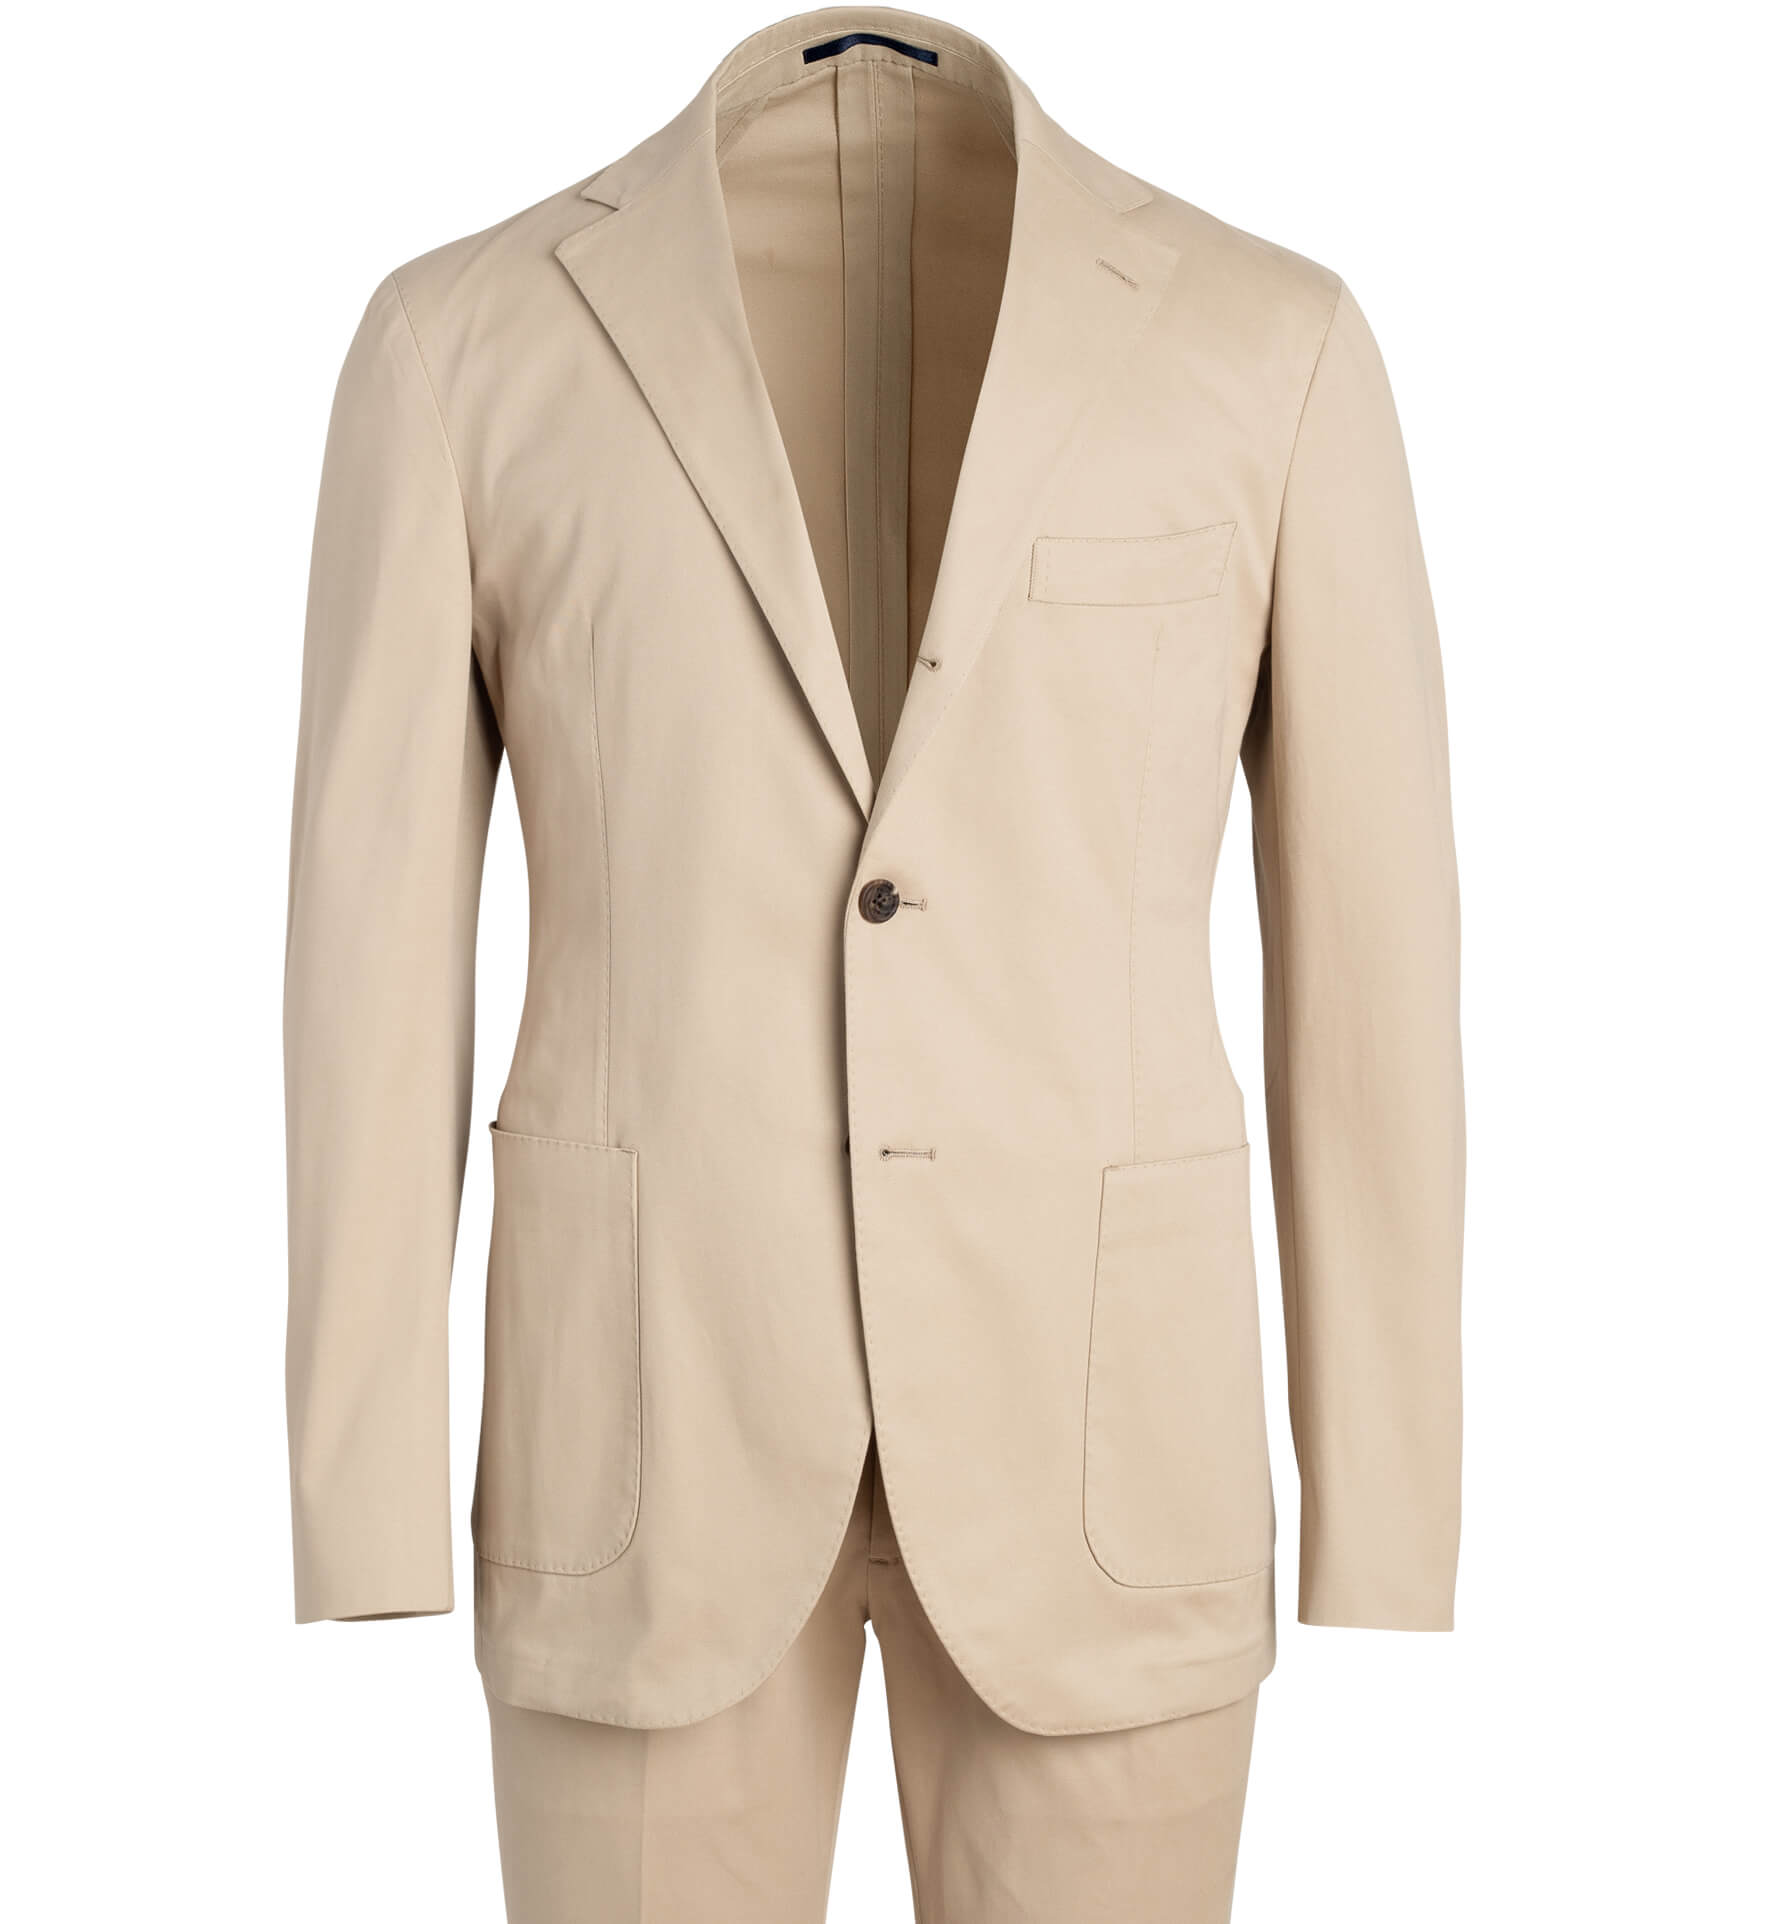 Zoom Image of Waverly Beige Stretch Cotton Suit